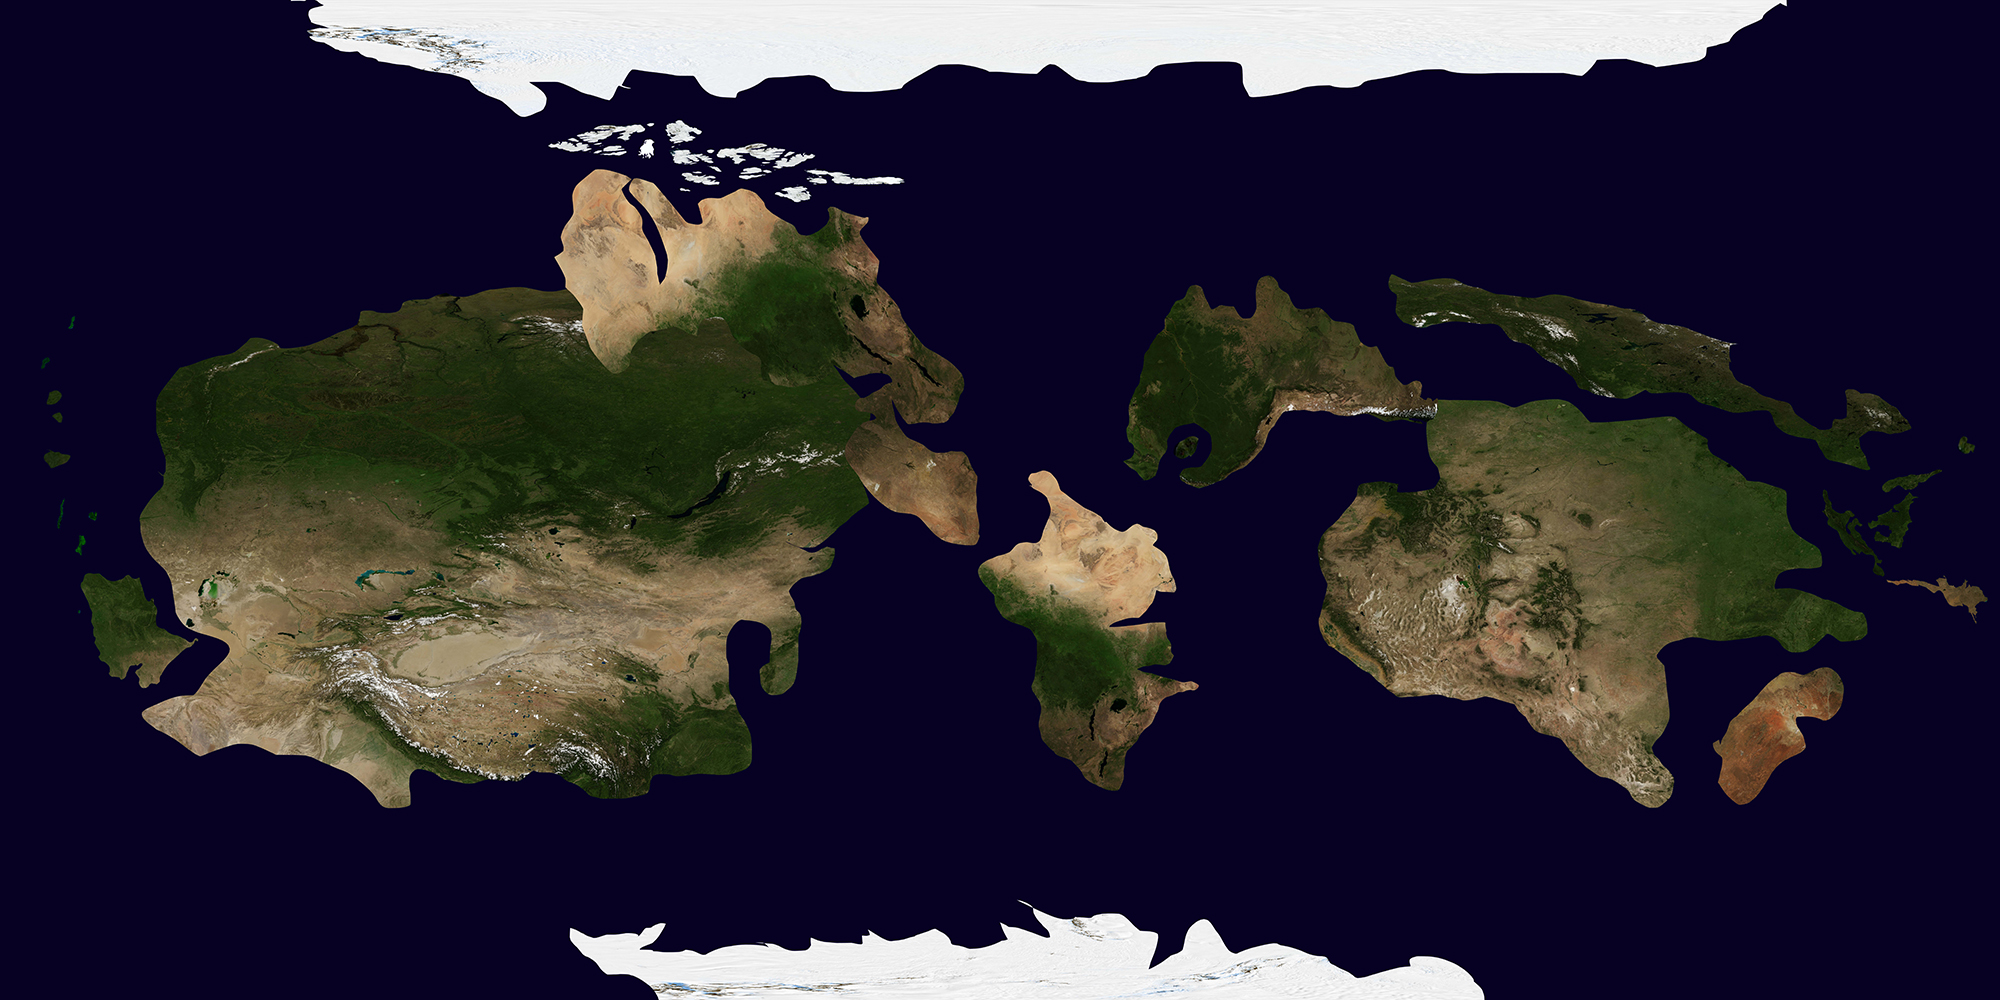 Mercator Style Map for Kepler-186f (dayside)